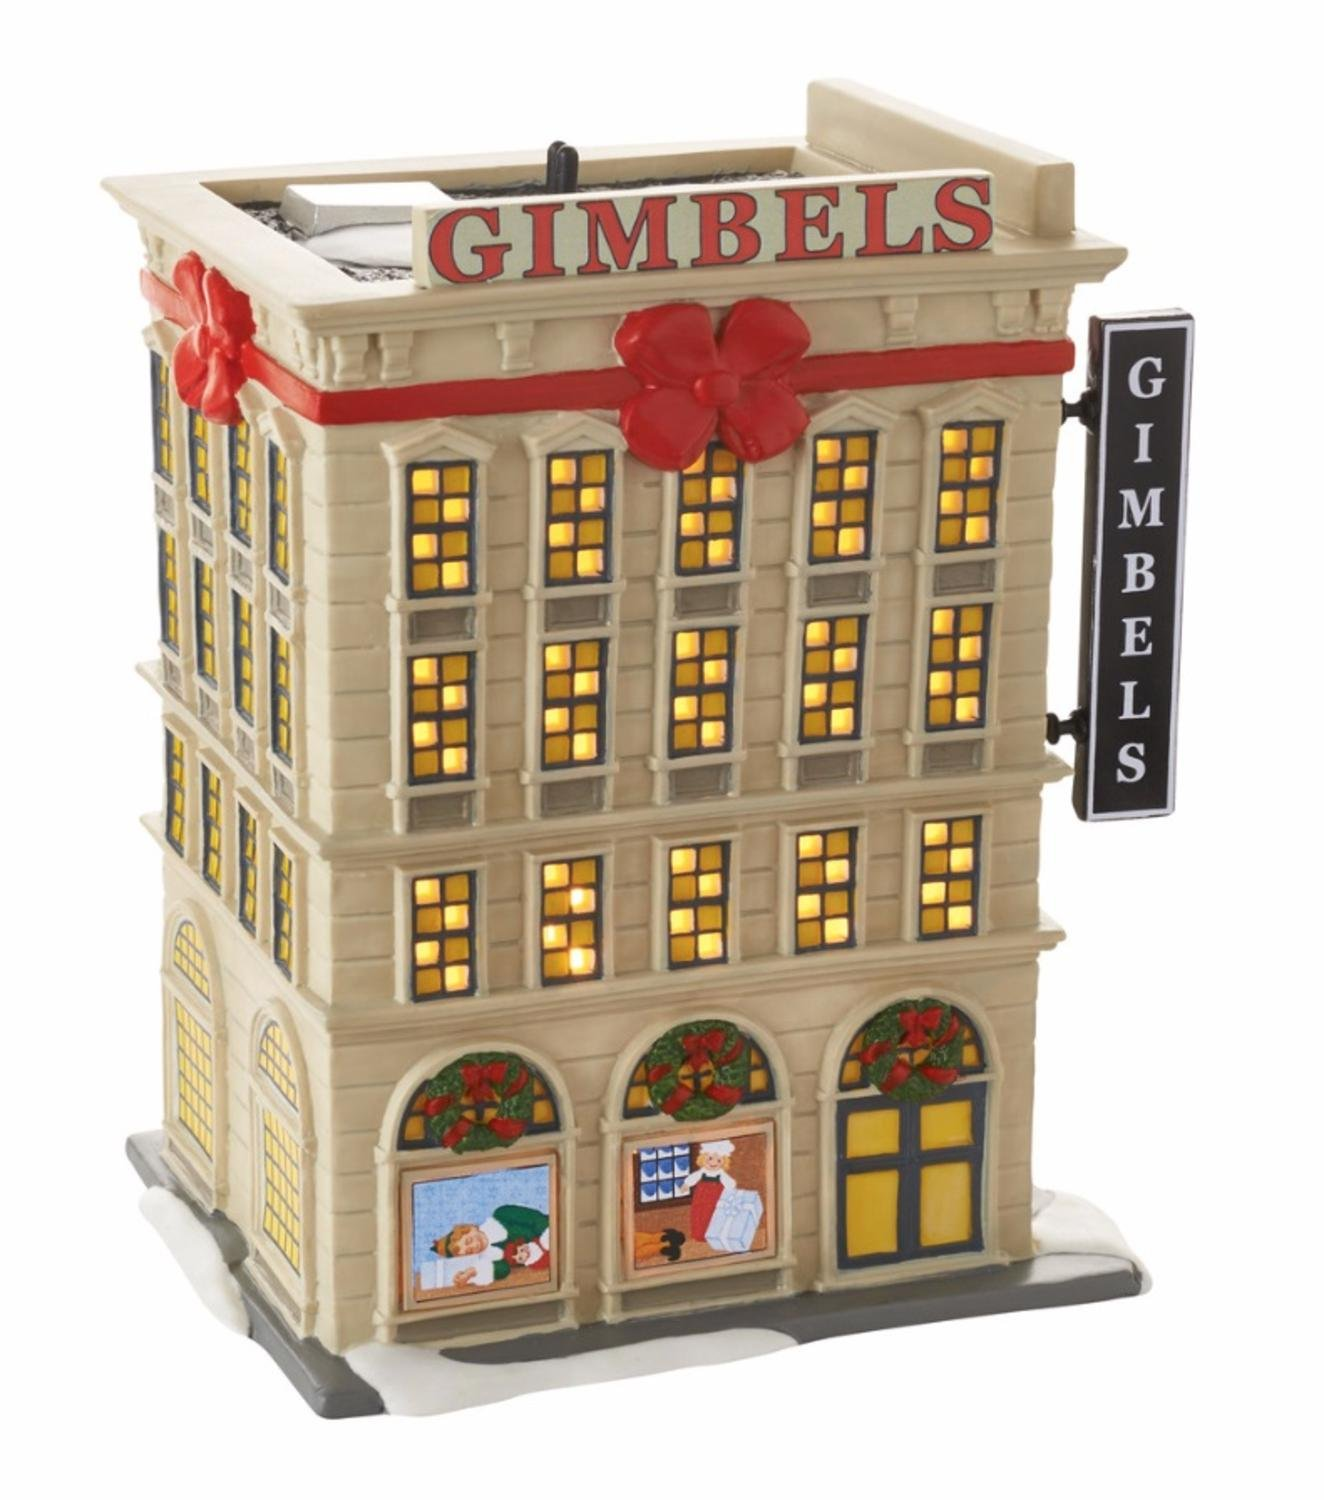 Department 56 Elf The Movie ''Gimbels Department Store'' Lighted Building #4053059